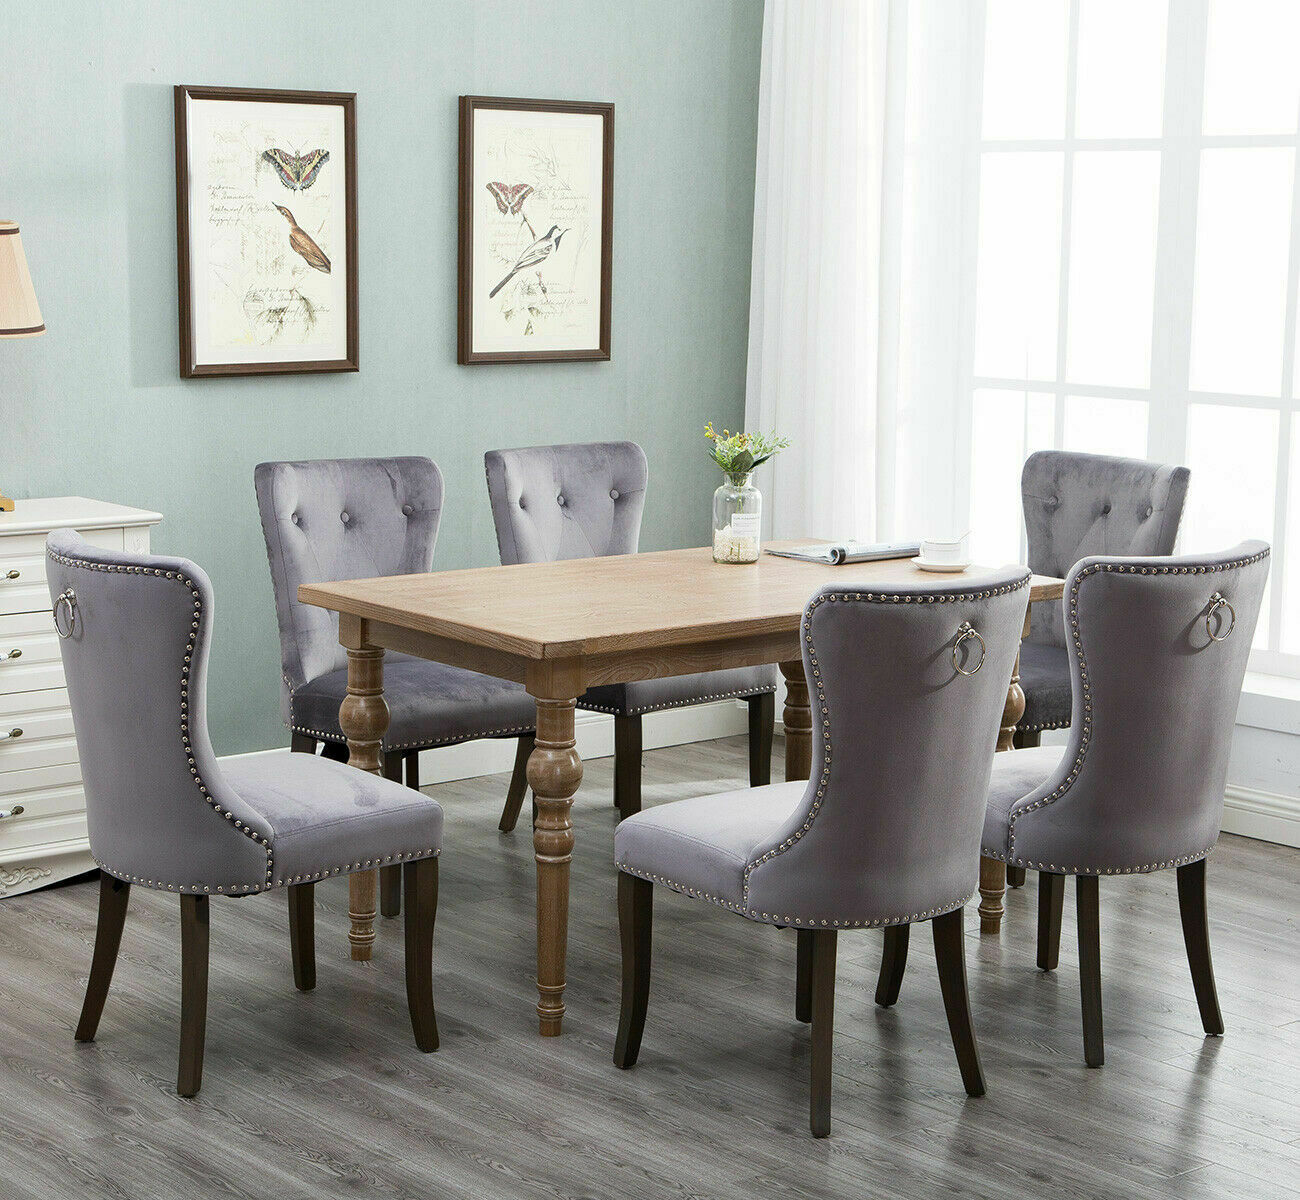 Set Of 2 Dining Chairs Wood Button Tufted Chair Upholstered Accent Chair Grey